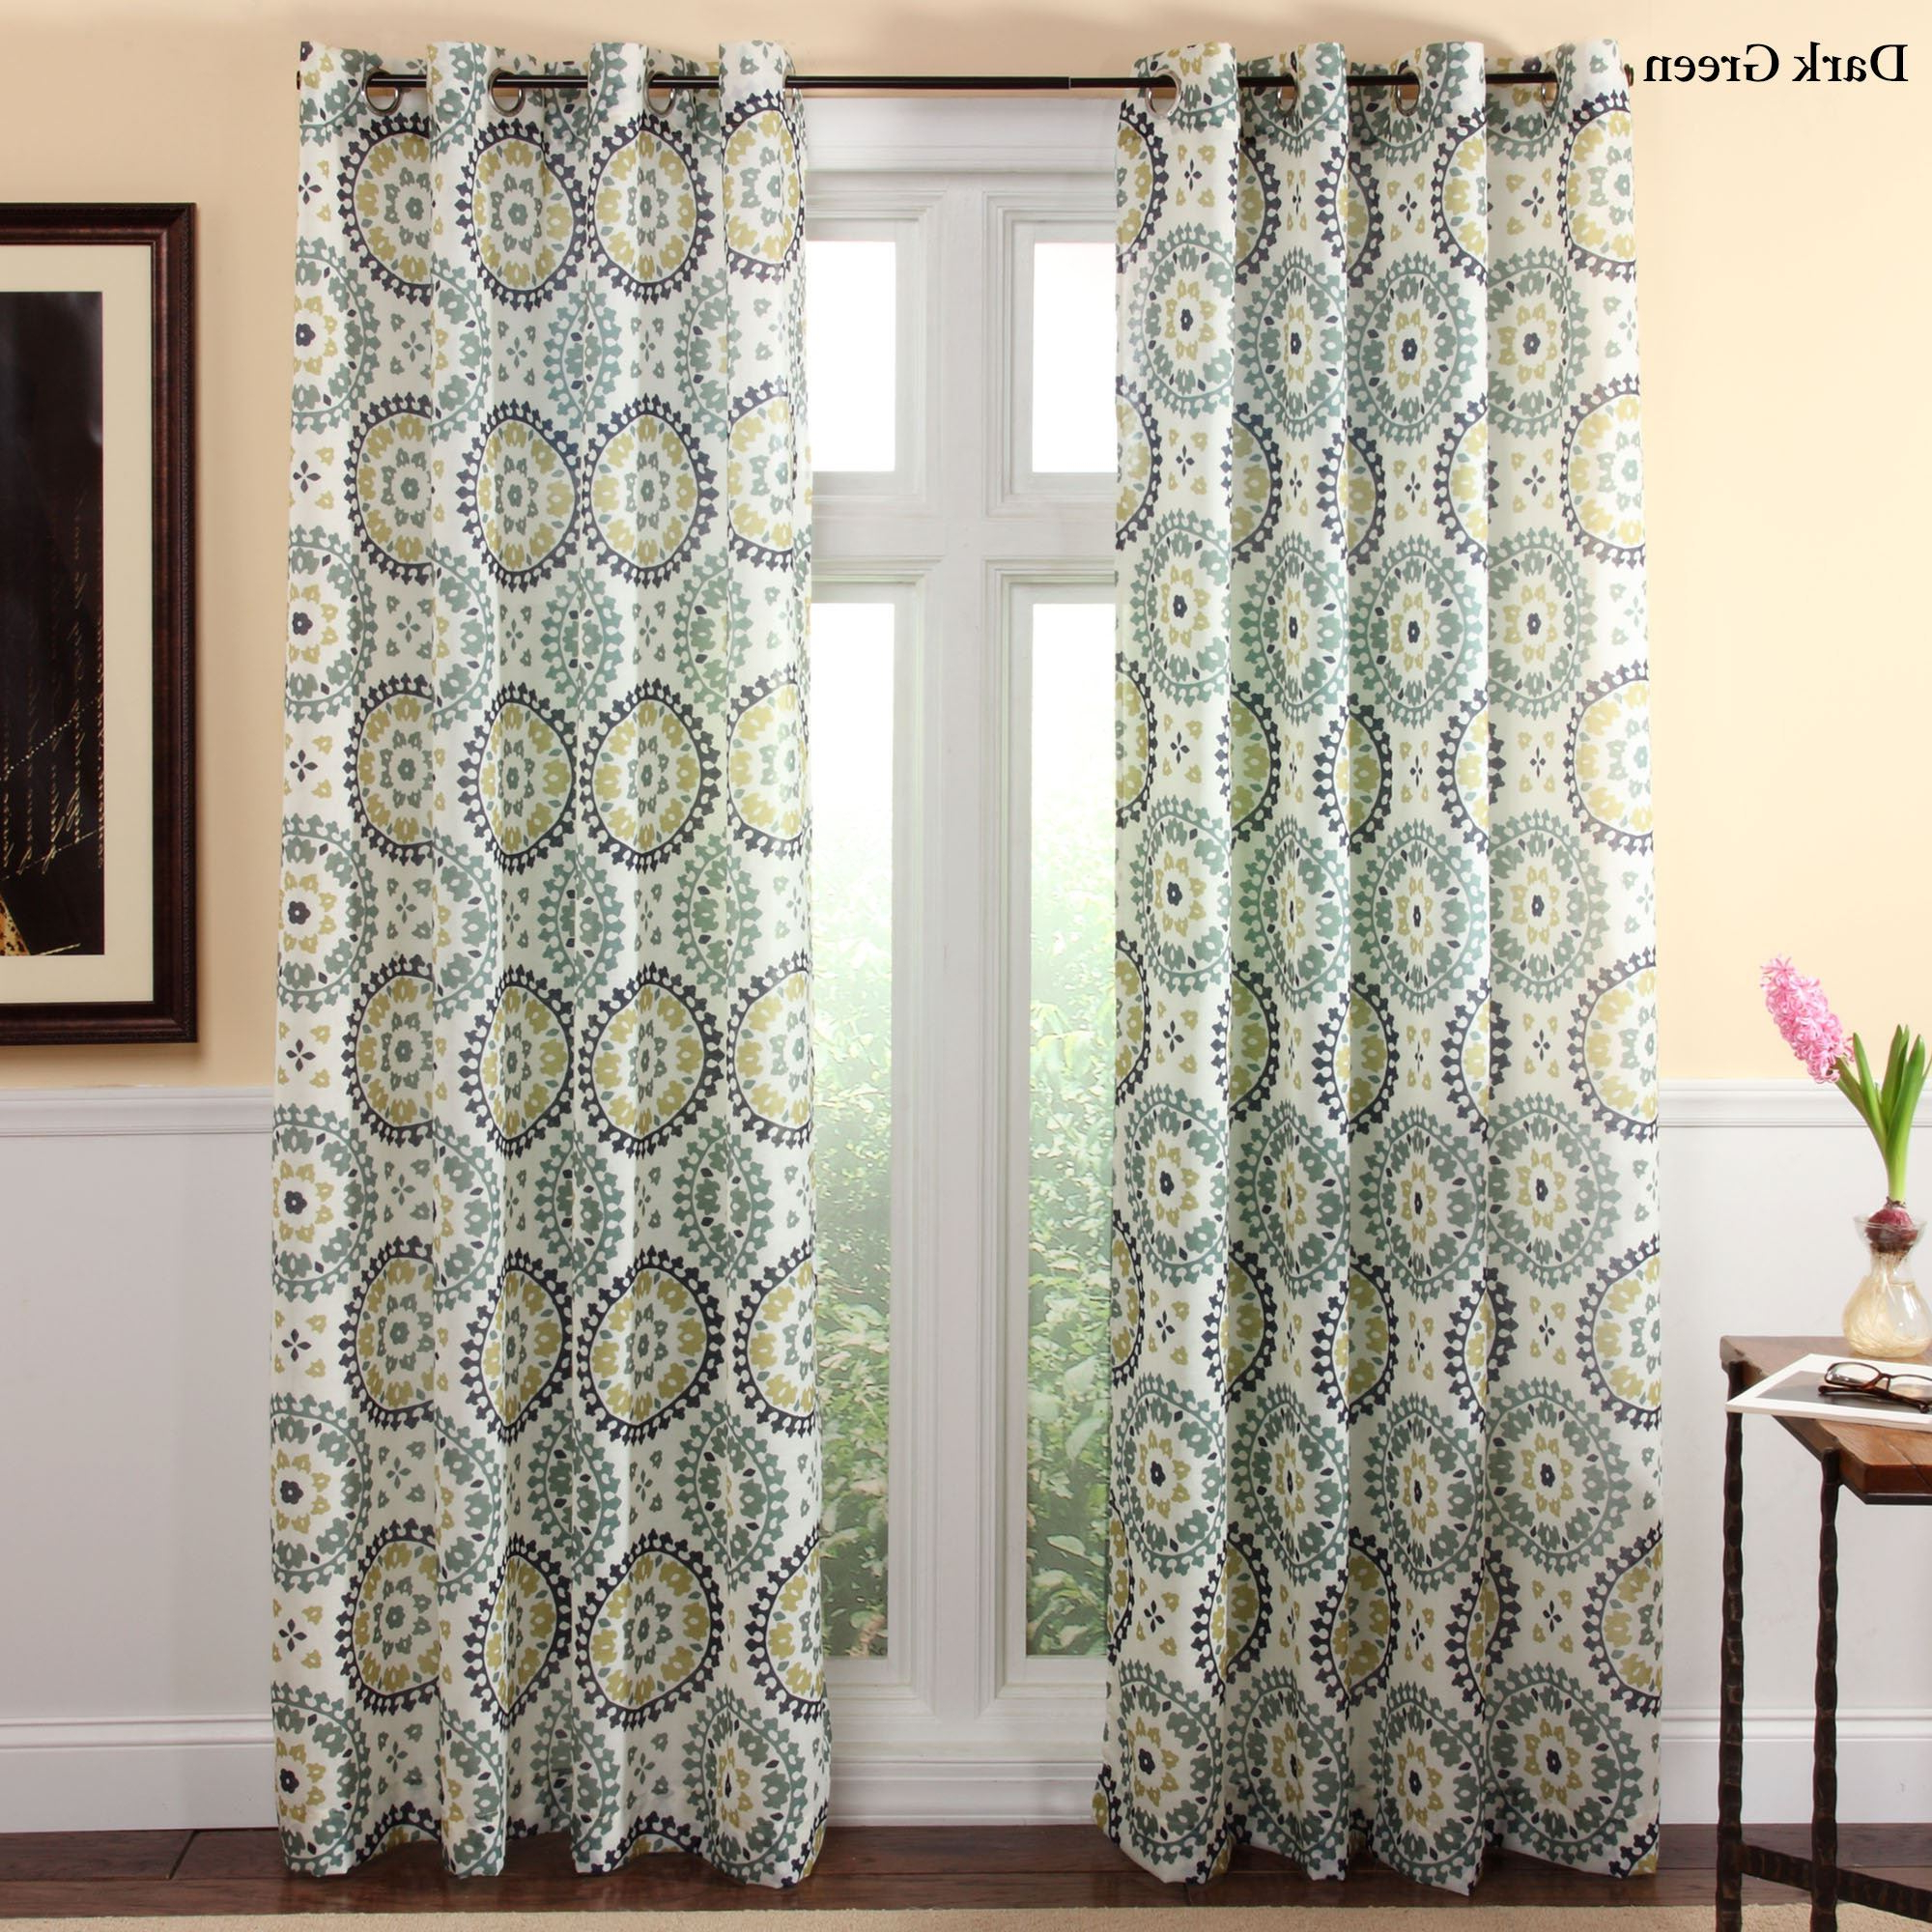 Grommet Curtain Panels In Well Known Melina Medallion Grommet Curtain Panels (View 18 of 20)